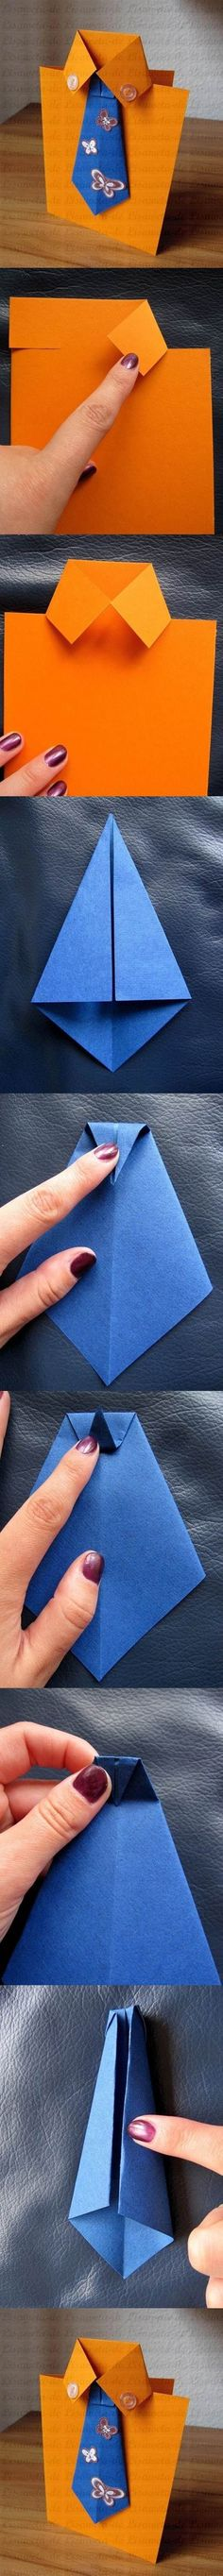 How To Make A Shirt And Tie Greeting Card Pictures, Photos, and Images for Facebook, Tumblr, Pinterest, and Twitter